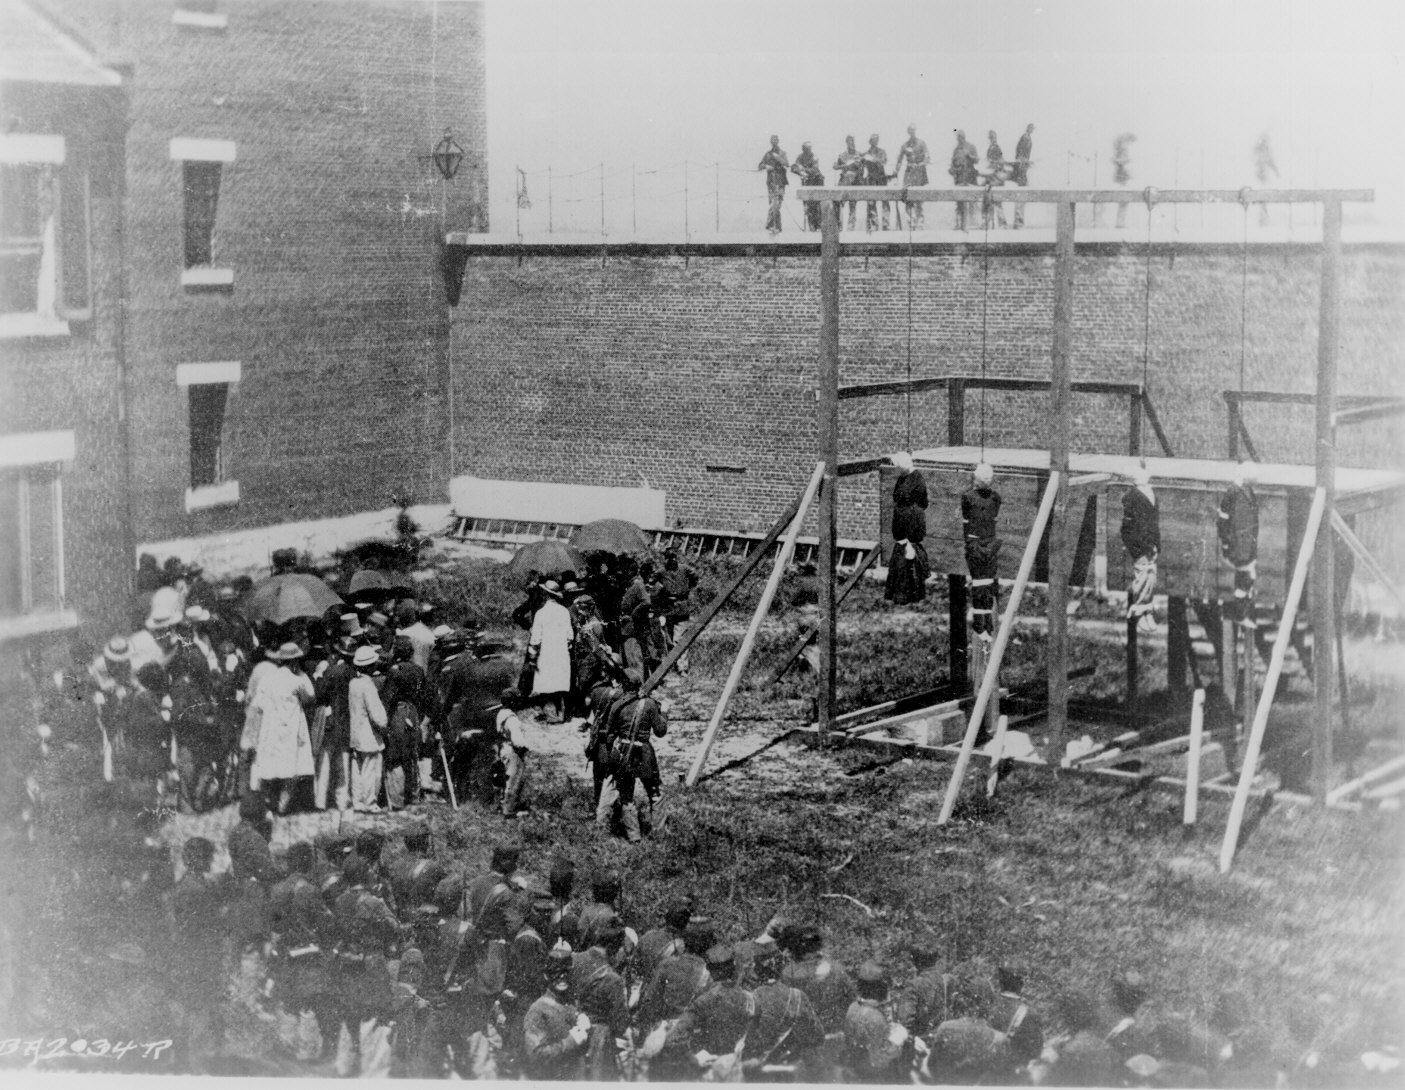 Execution of Mary E. Surratt, Lewis T. Powell, David E. Herold, and George A. Atzerodt as as conspirators in the Lincoln Assassination, July 7,1865. Photographed by Alexander Gardner. 111-BA-2034